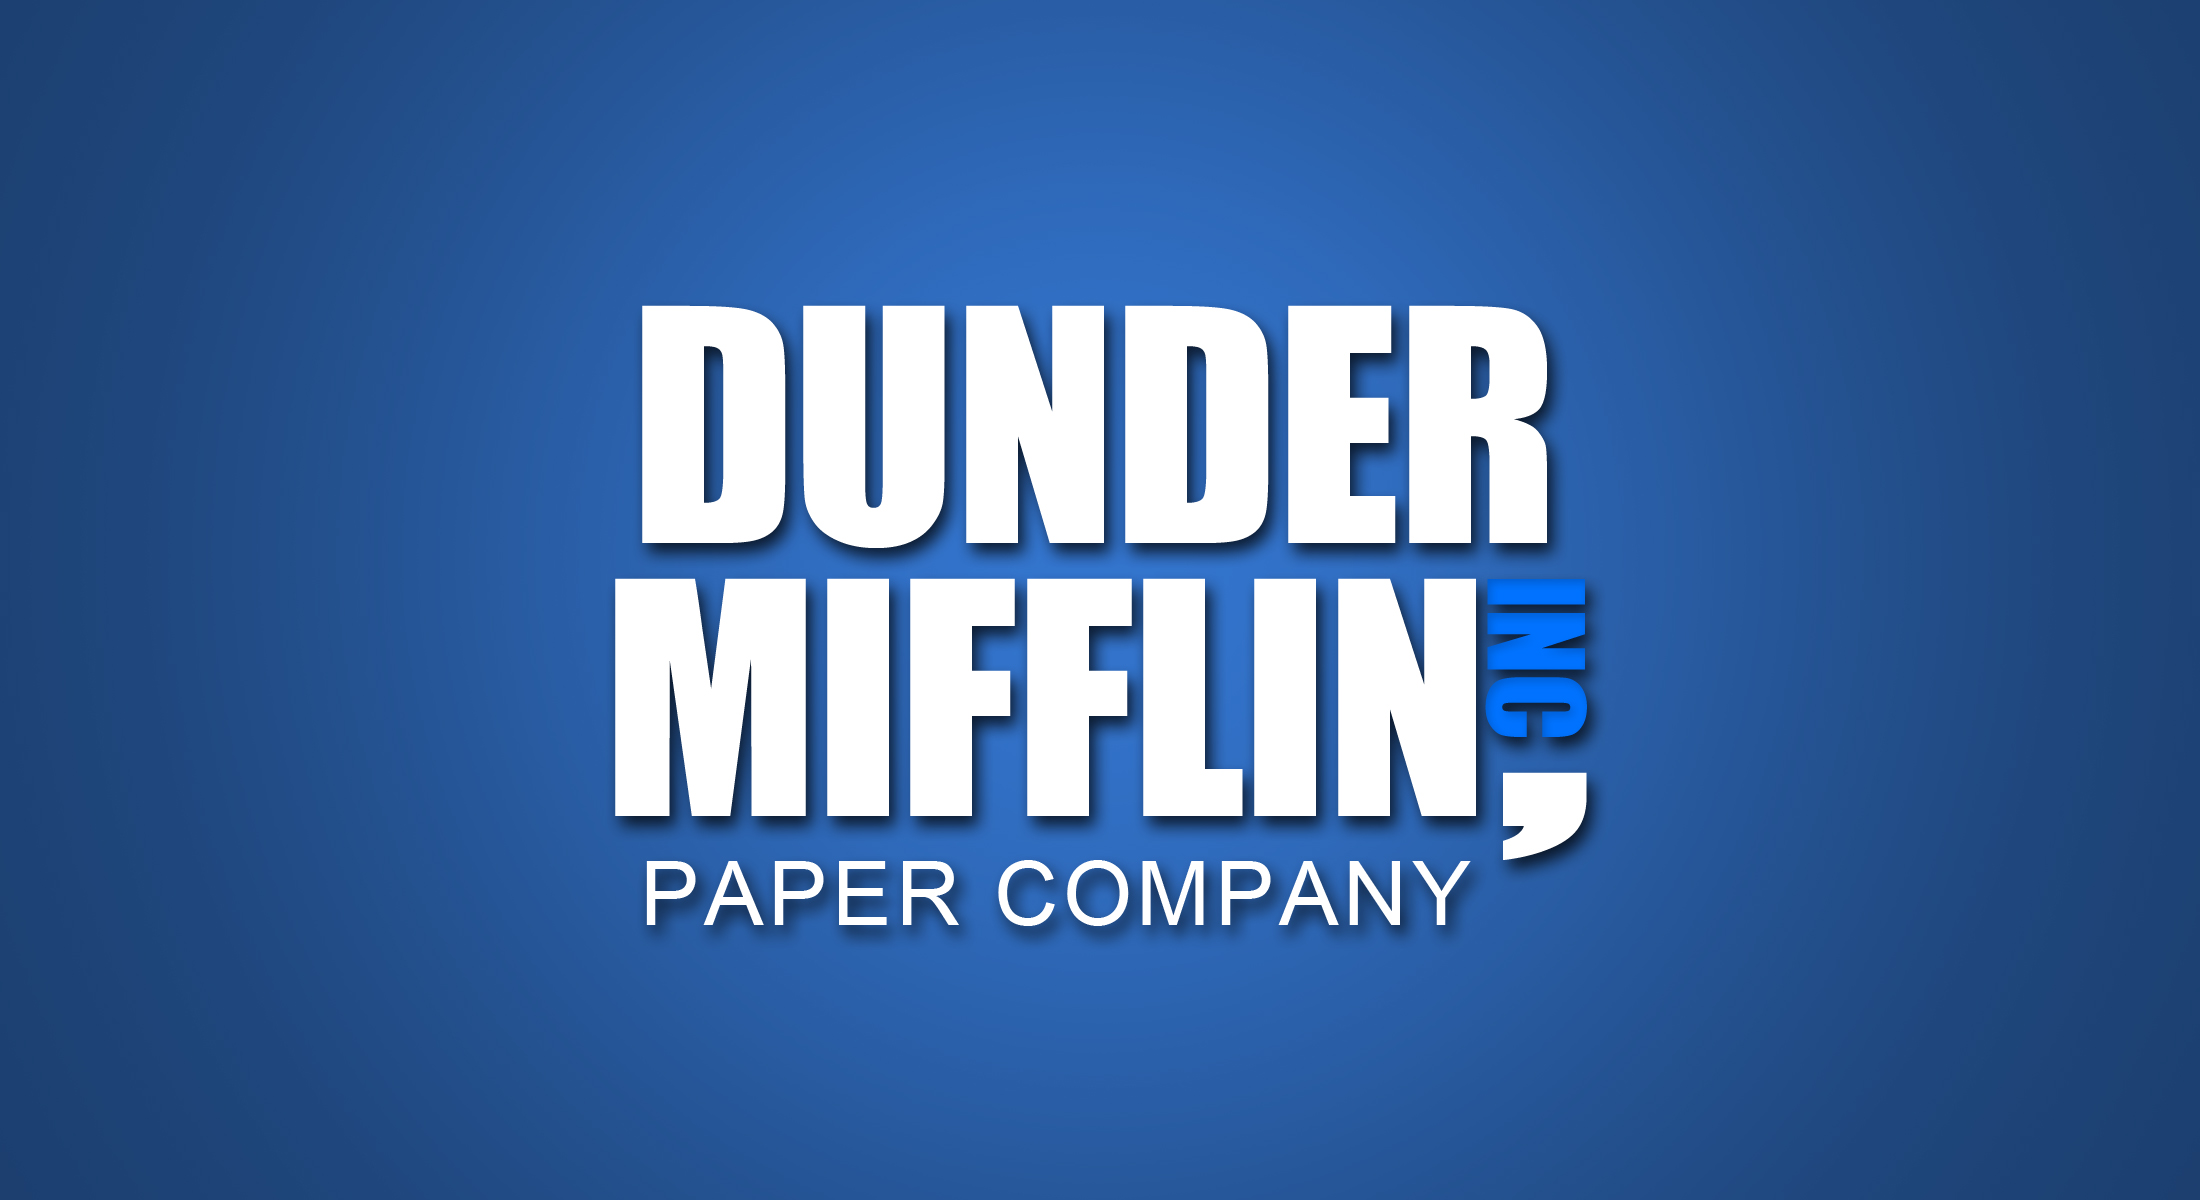 Best 47+ Dunder Mifflin Wallpaper on HipWallpaper | Dunder Mifflin ...